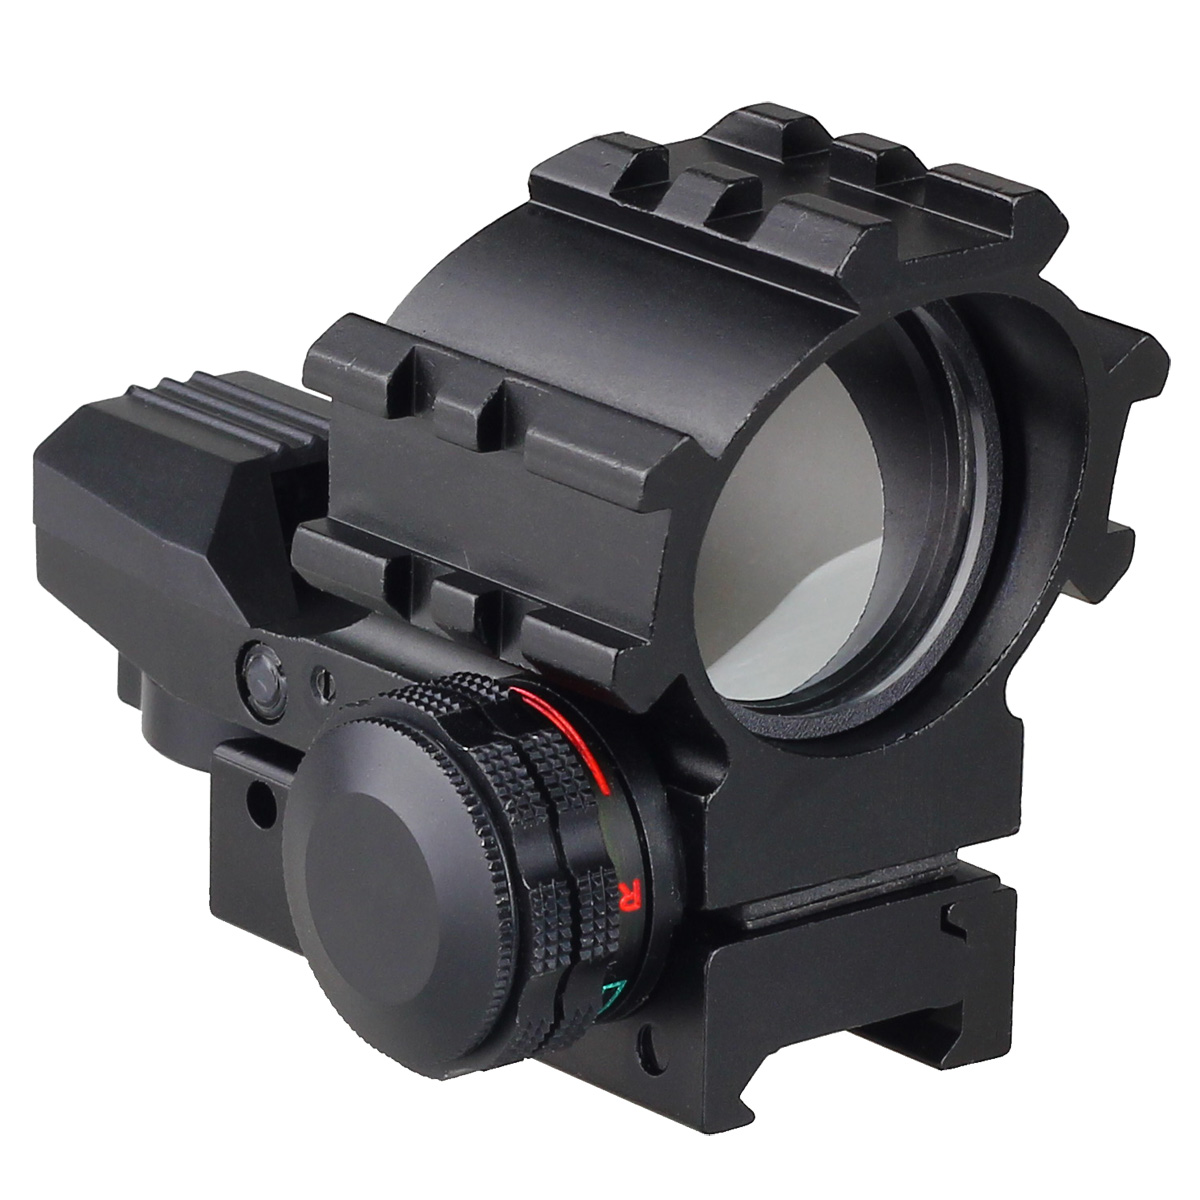 Tactical Holographic 4 Reticles Projected Red Laser Green Dot Reflex Sight Scope 20mm Picatinny Mount for Hunting Airsoft Guns new 4 reticle tactical reflex red green laser holographic projected dot sight scope airgun rifle sight hunting rail mount 20mm